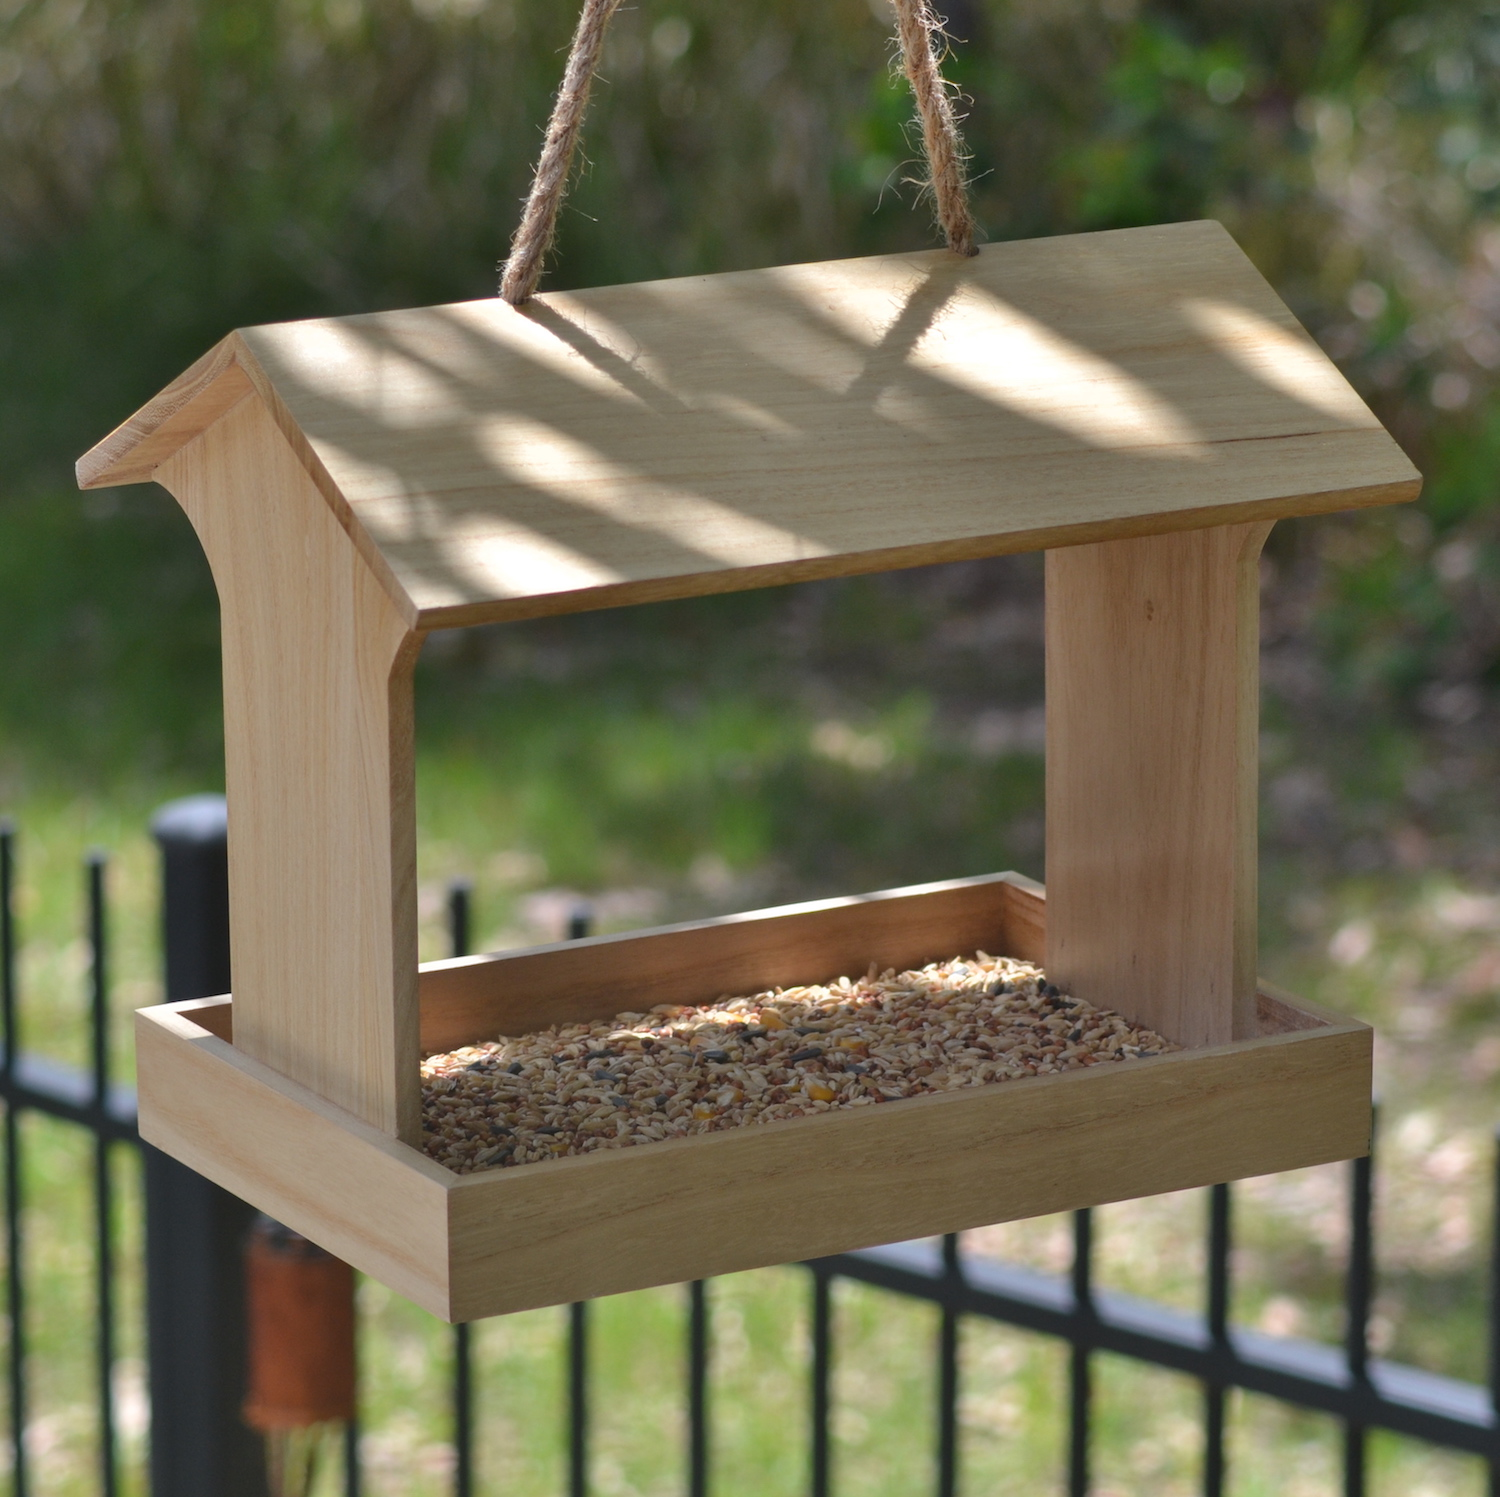 id introduction wooden bird large feeder